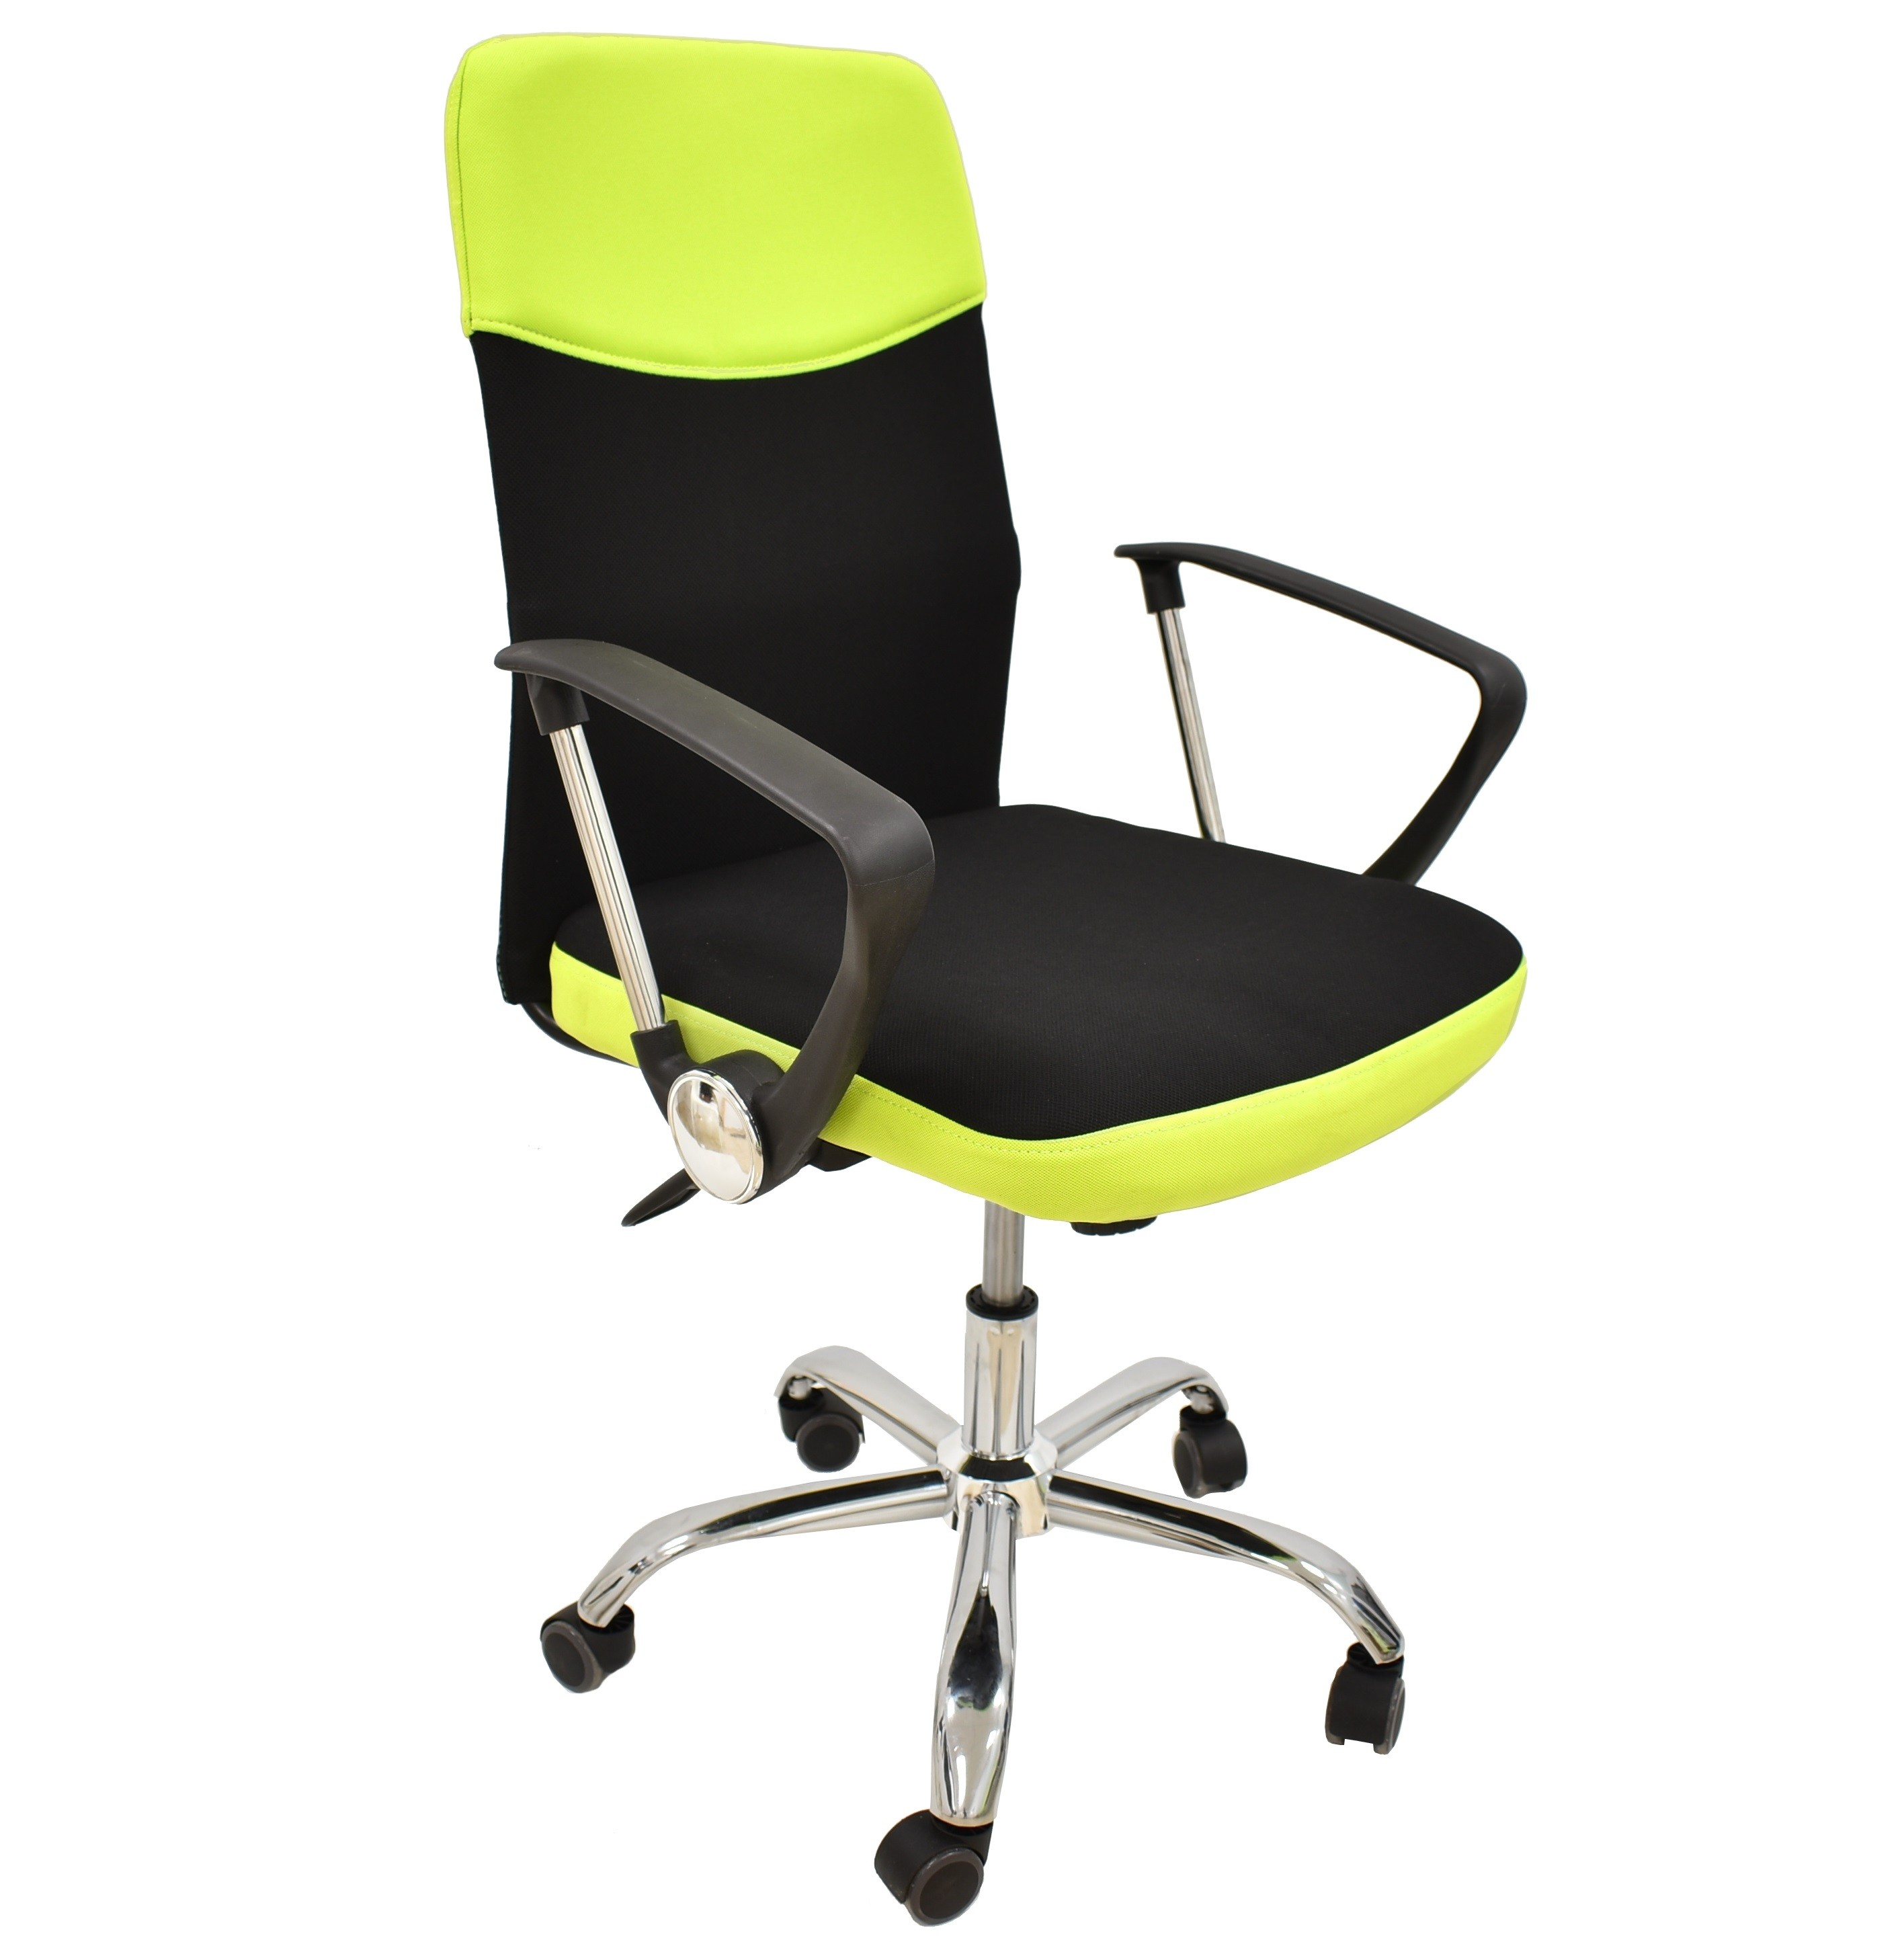 Office Armchair TANGO, Gas, Tilt, Fabric Black Green